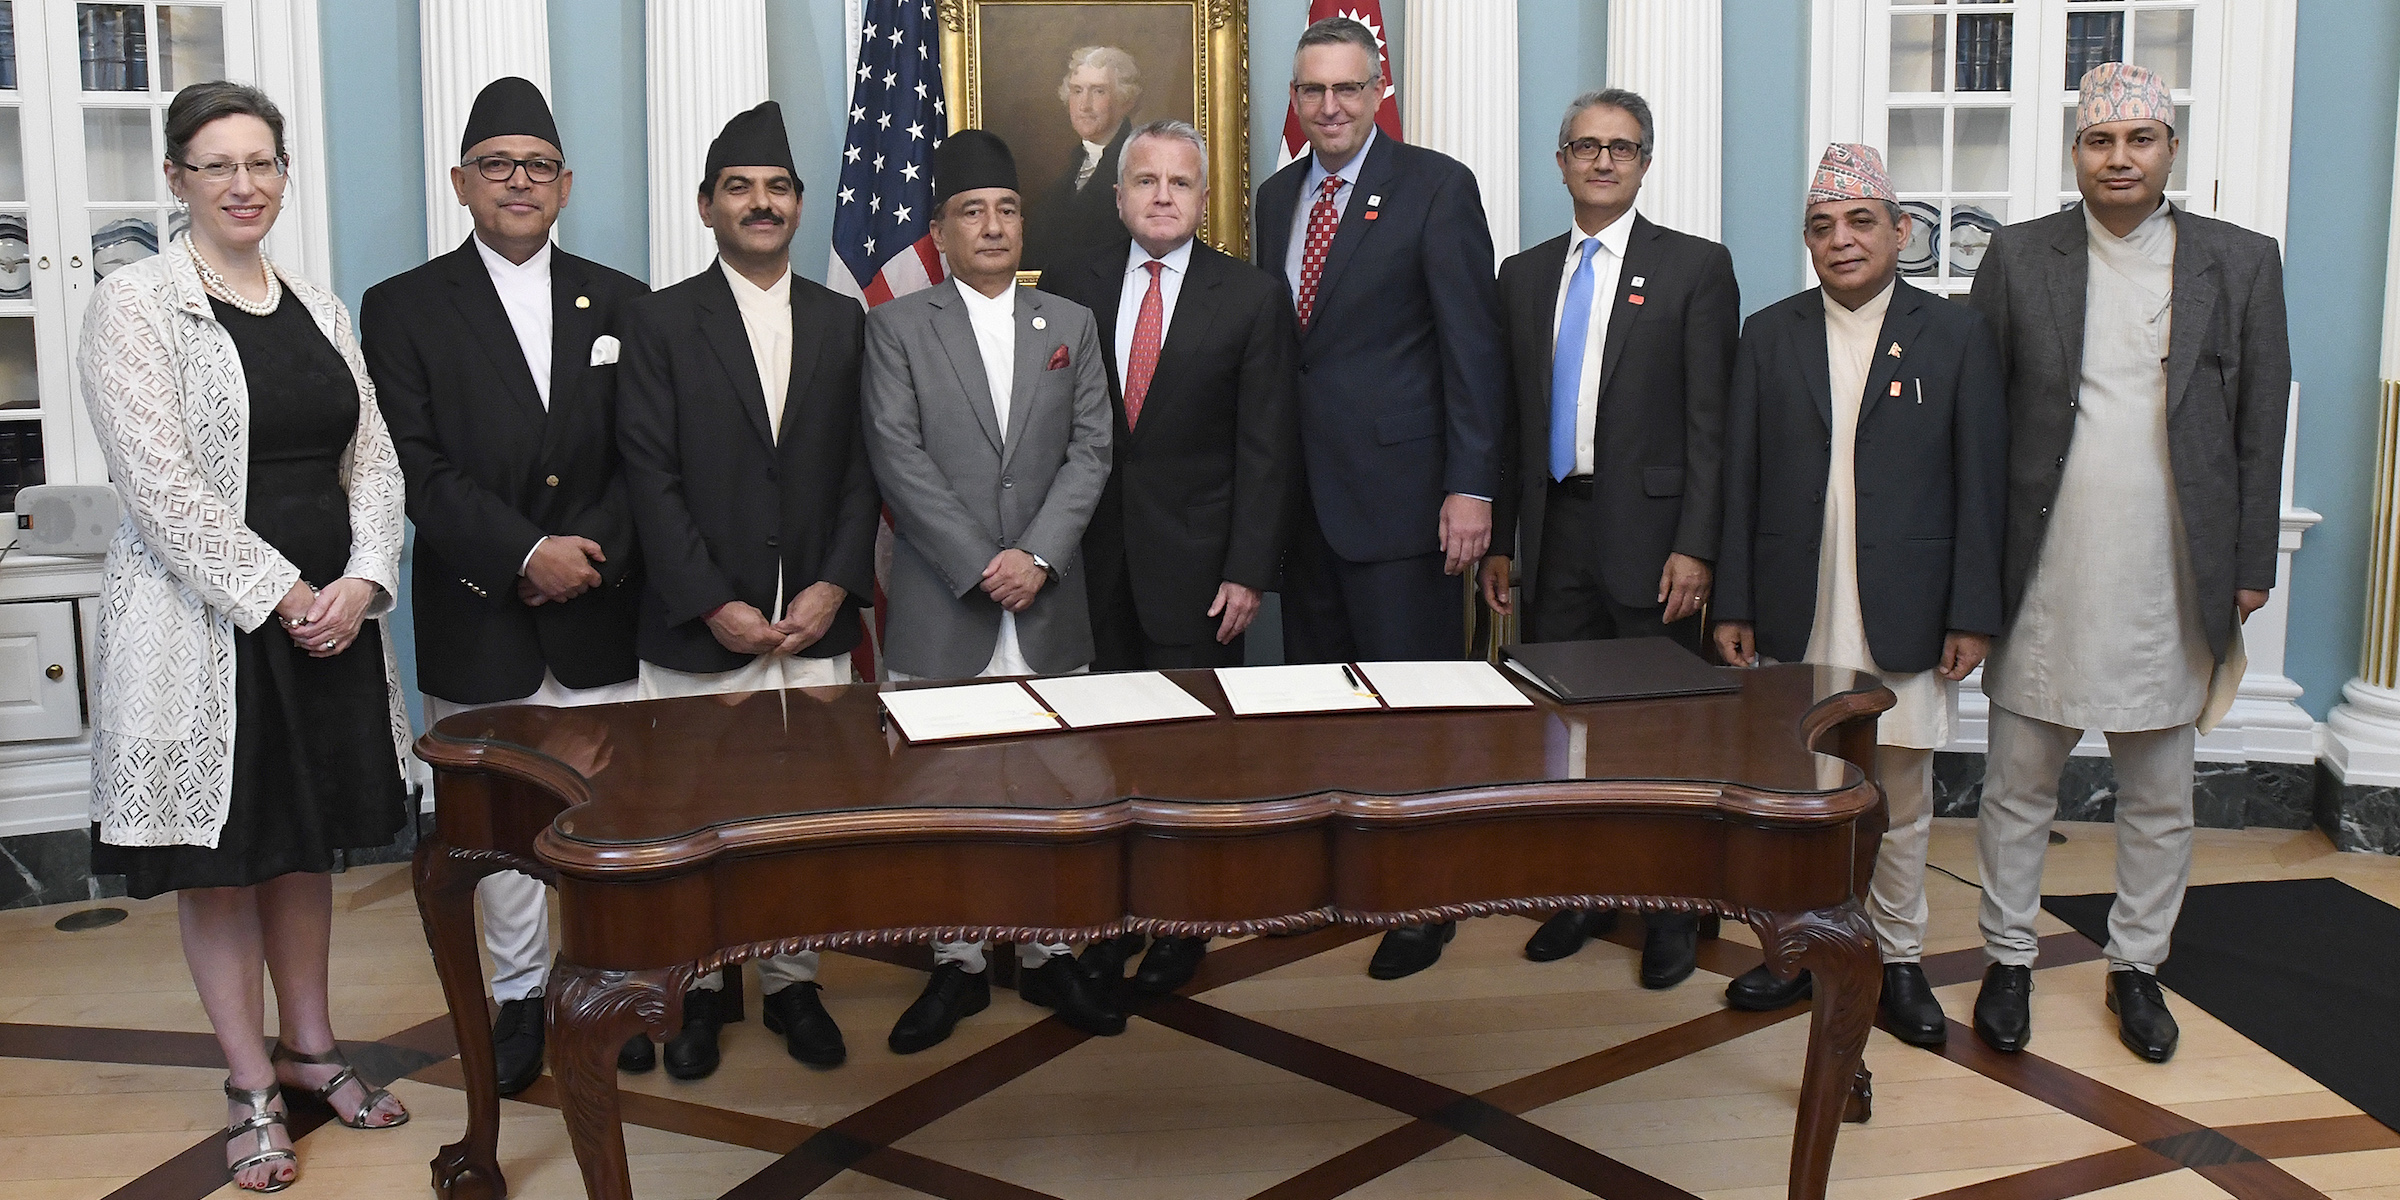 Officials gather after the signing of the Nepal Compact, Thursday, Sept. 14, 2017 in Washington.